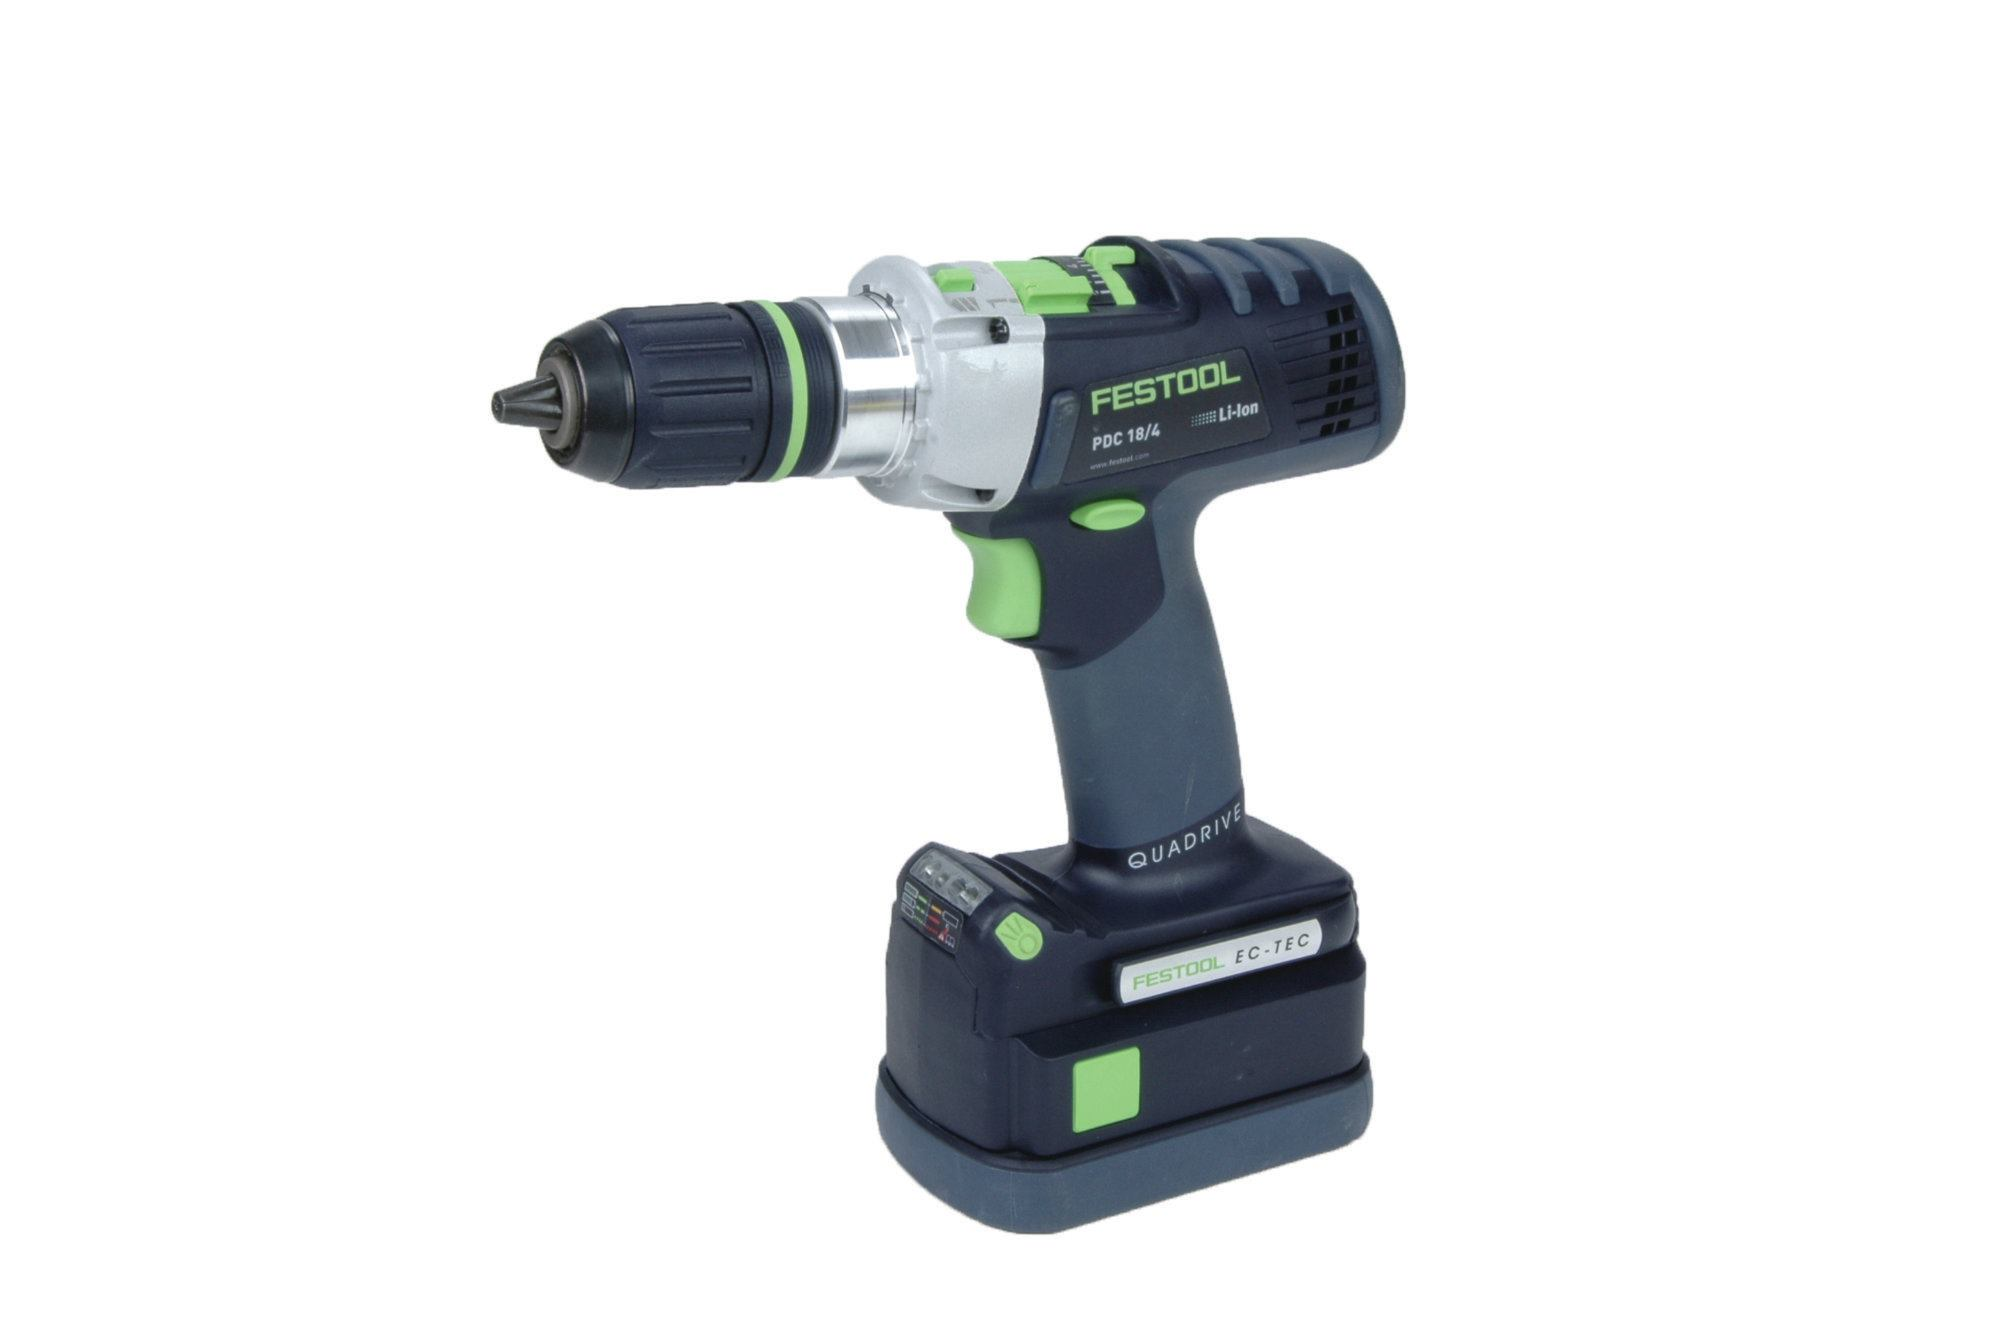 Festool Quadrive Pdc184 Hammer Drill Driver Review Tools